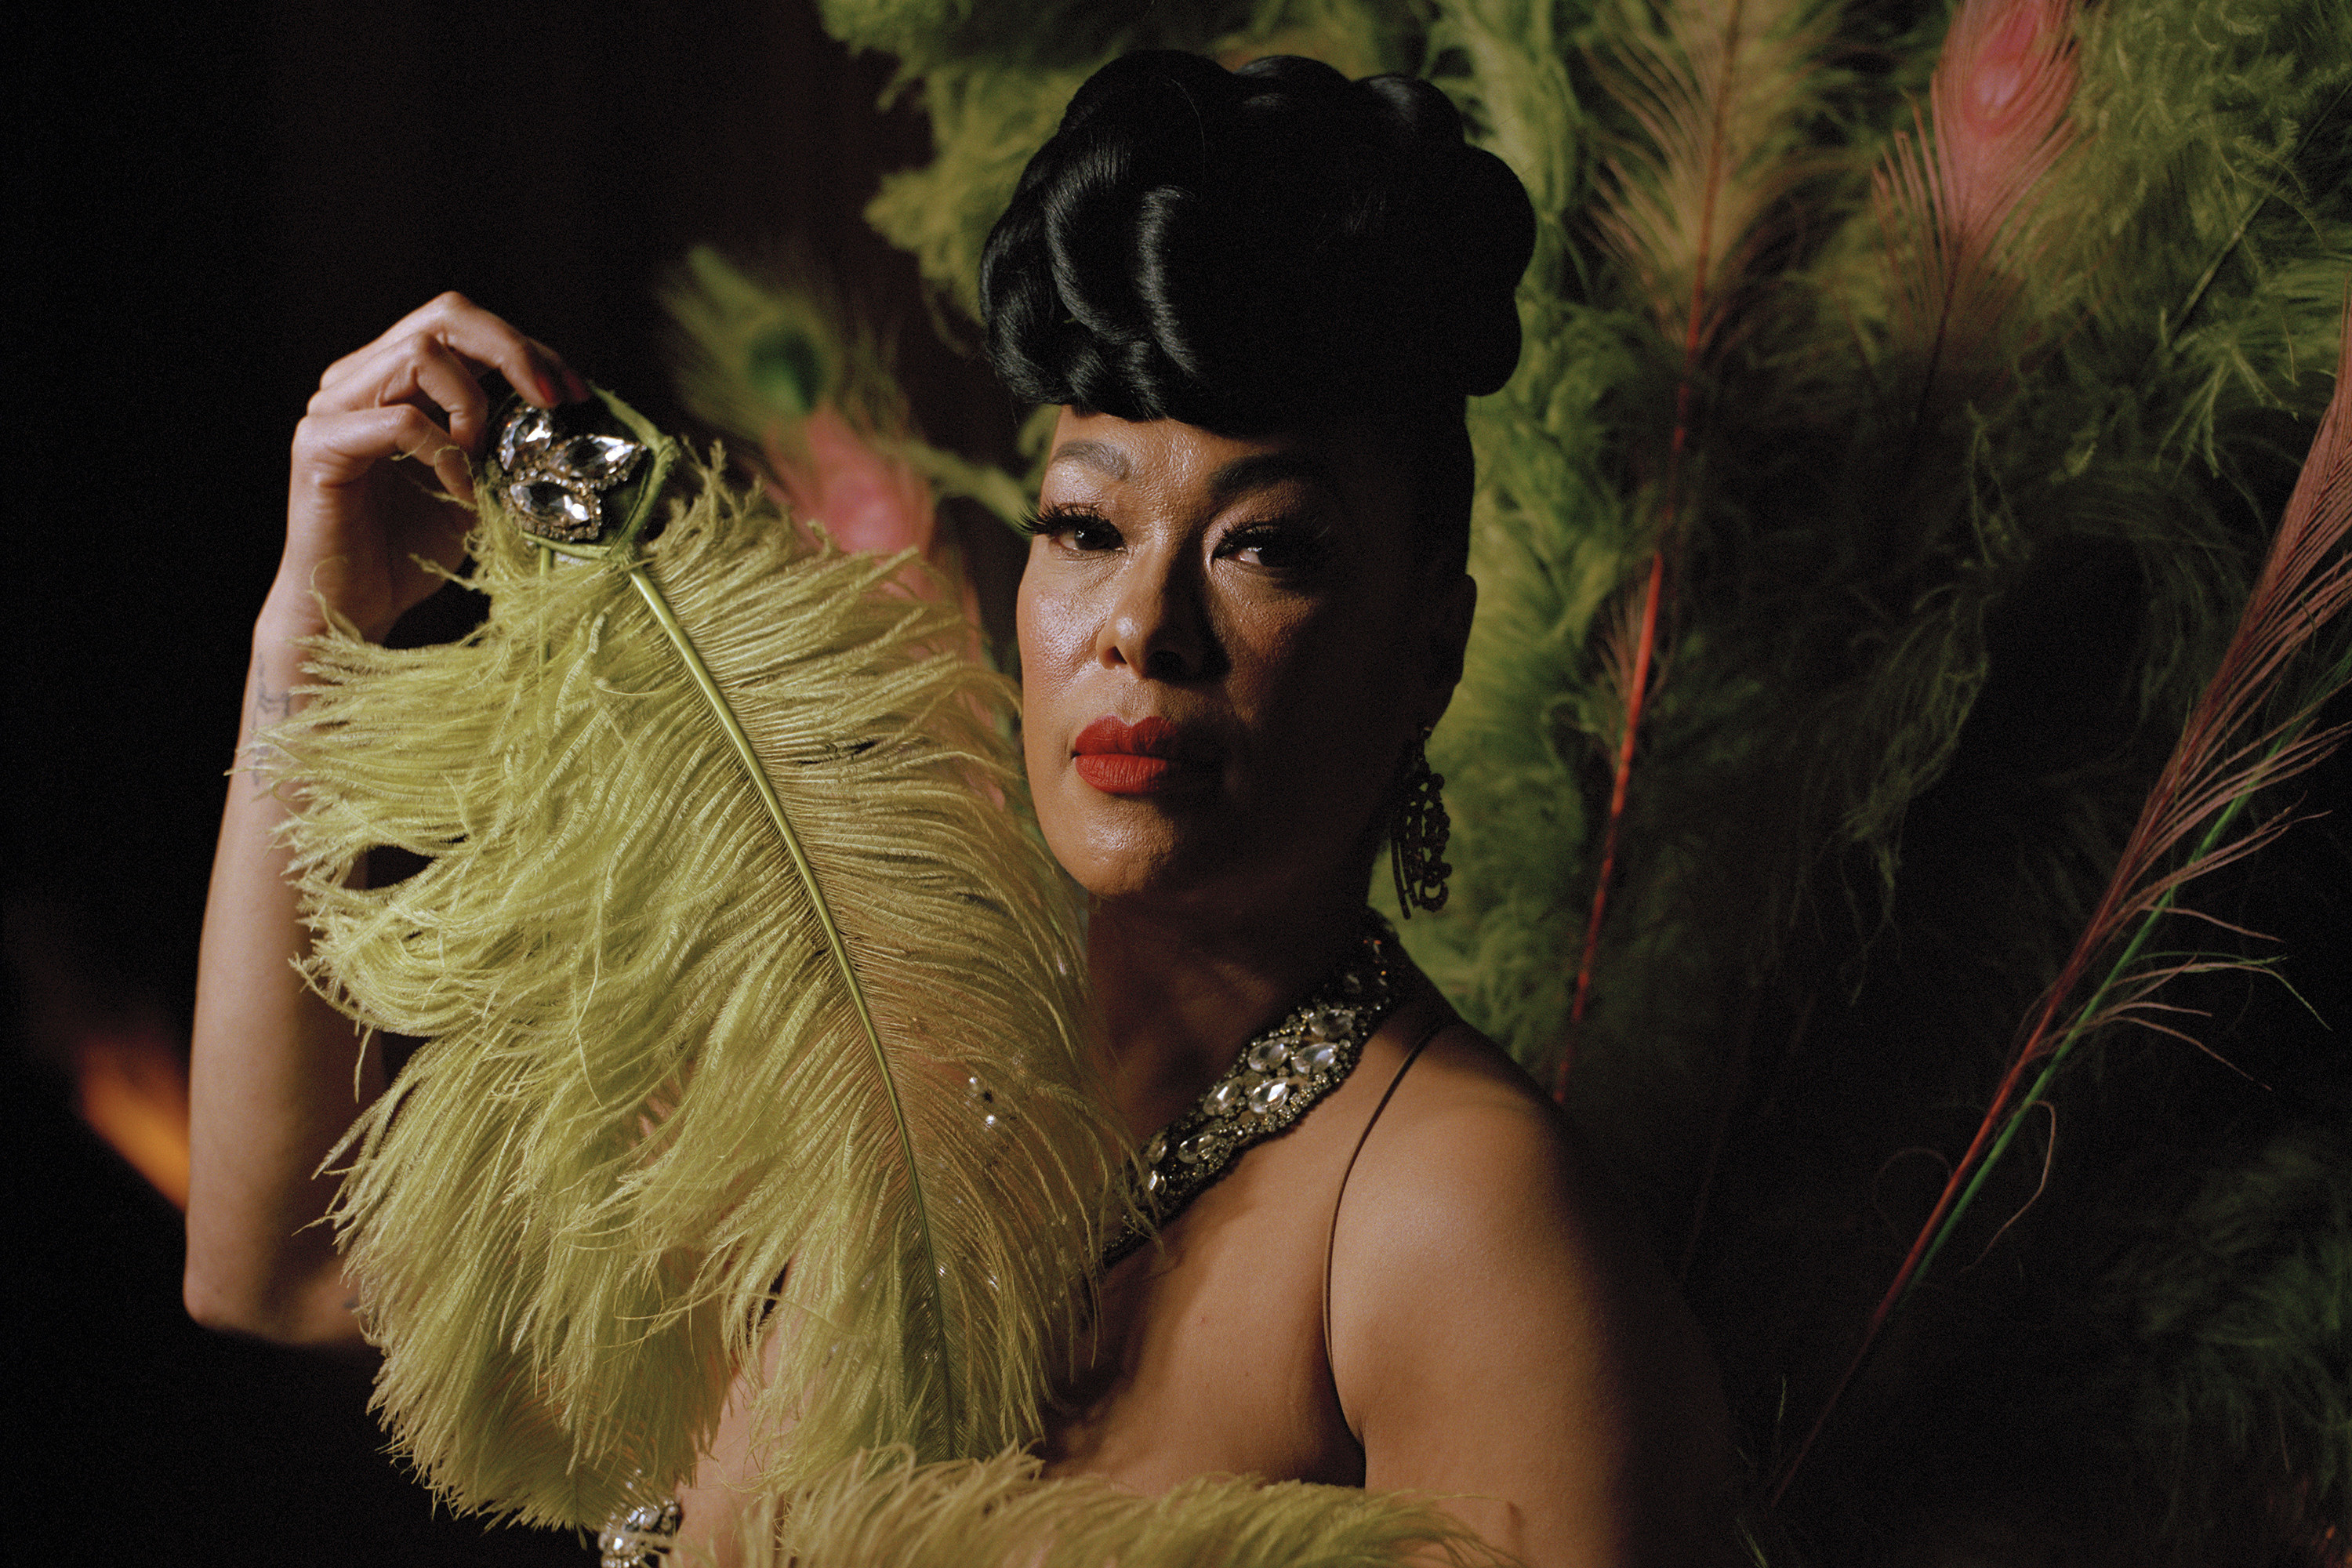 Burlesque dancer Maine Attraction holding up large a feather near her face